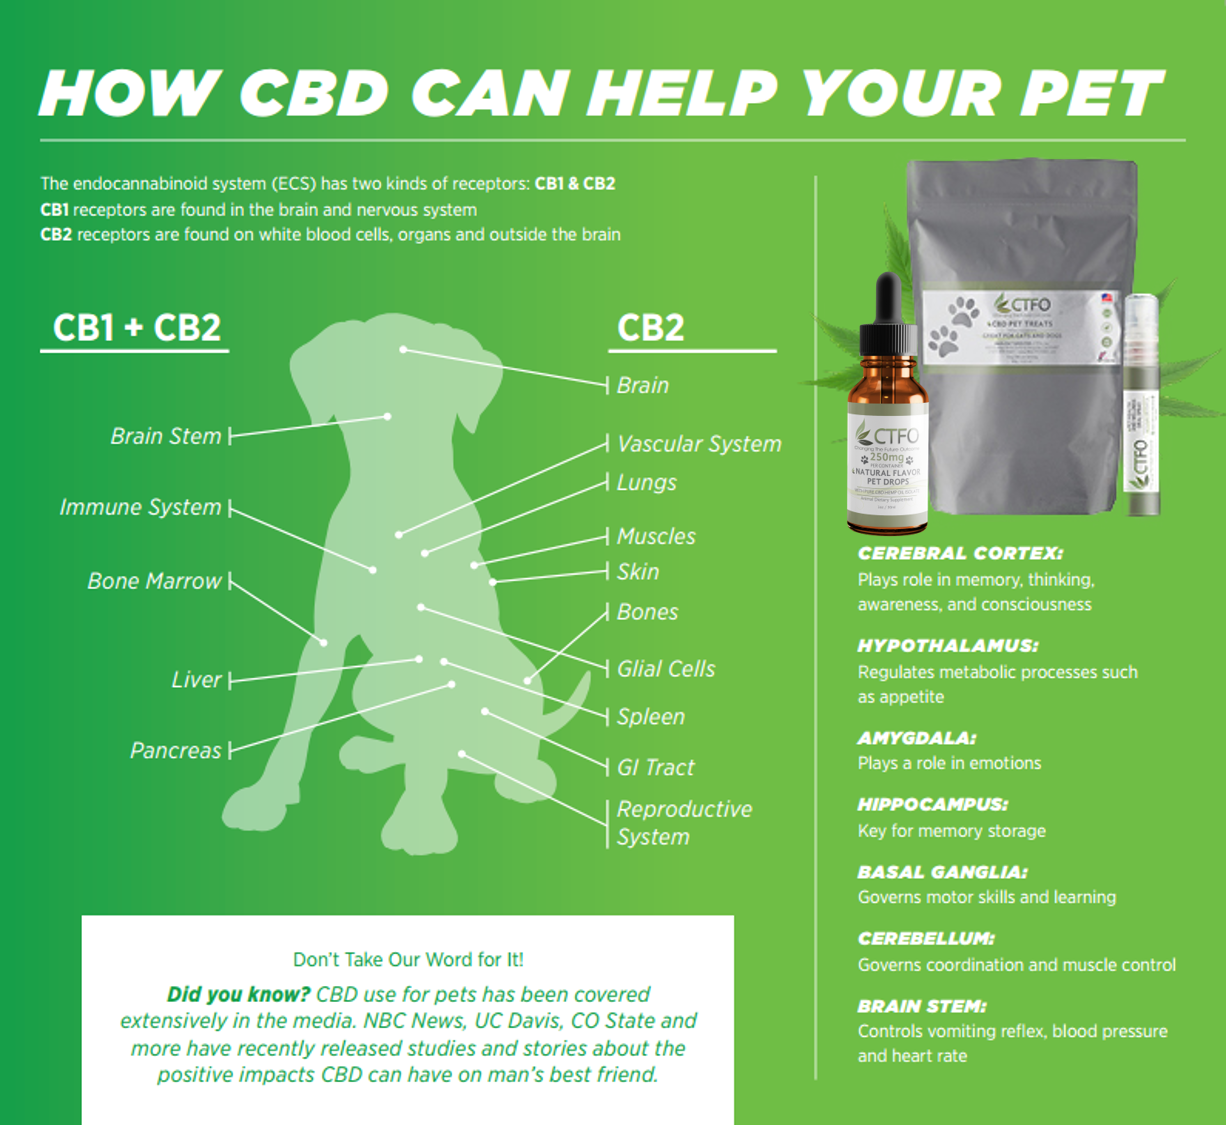 Relief For My Pet How CBD Can Help